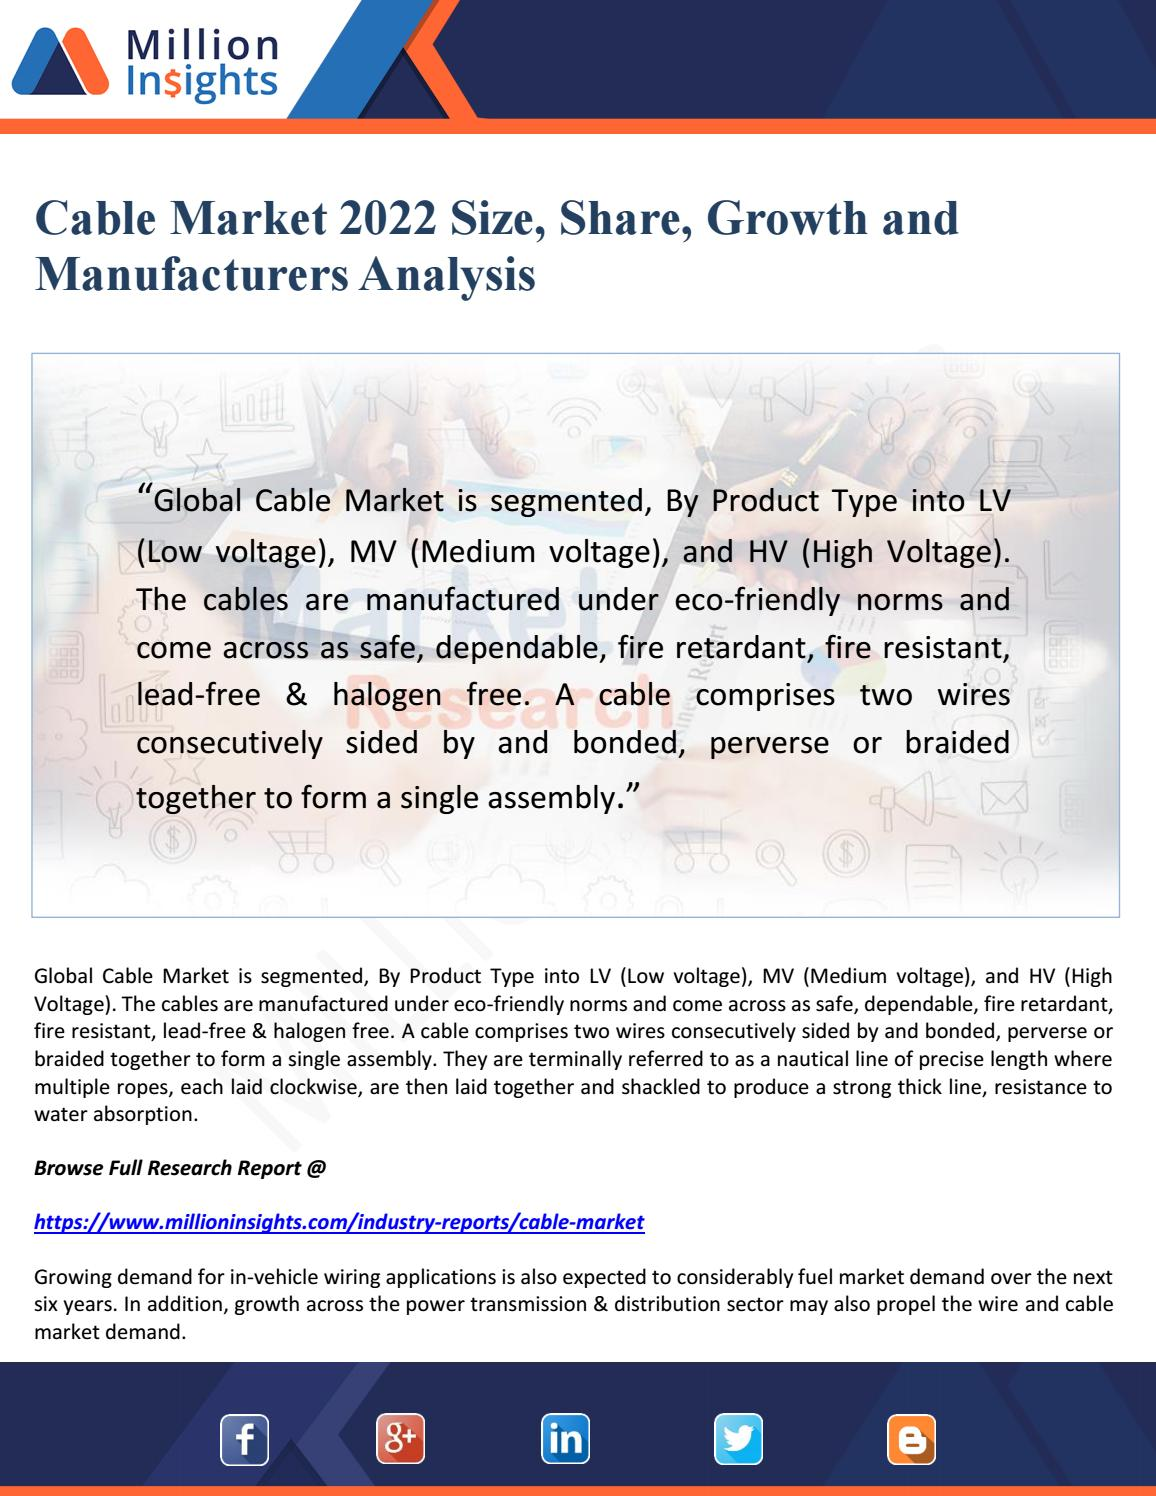 Cable market 2022 size, share, growth and manufacturers analysis by ...